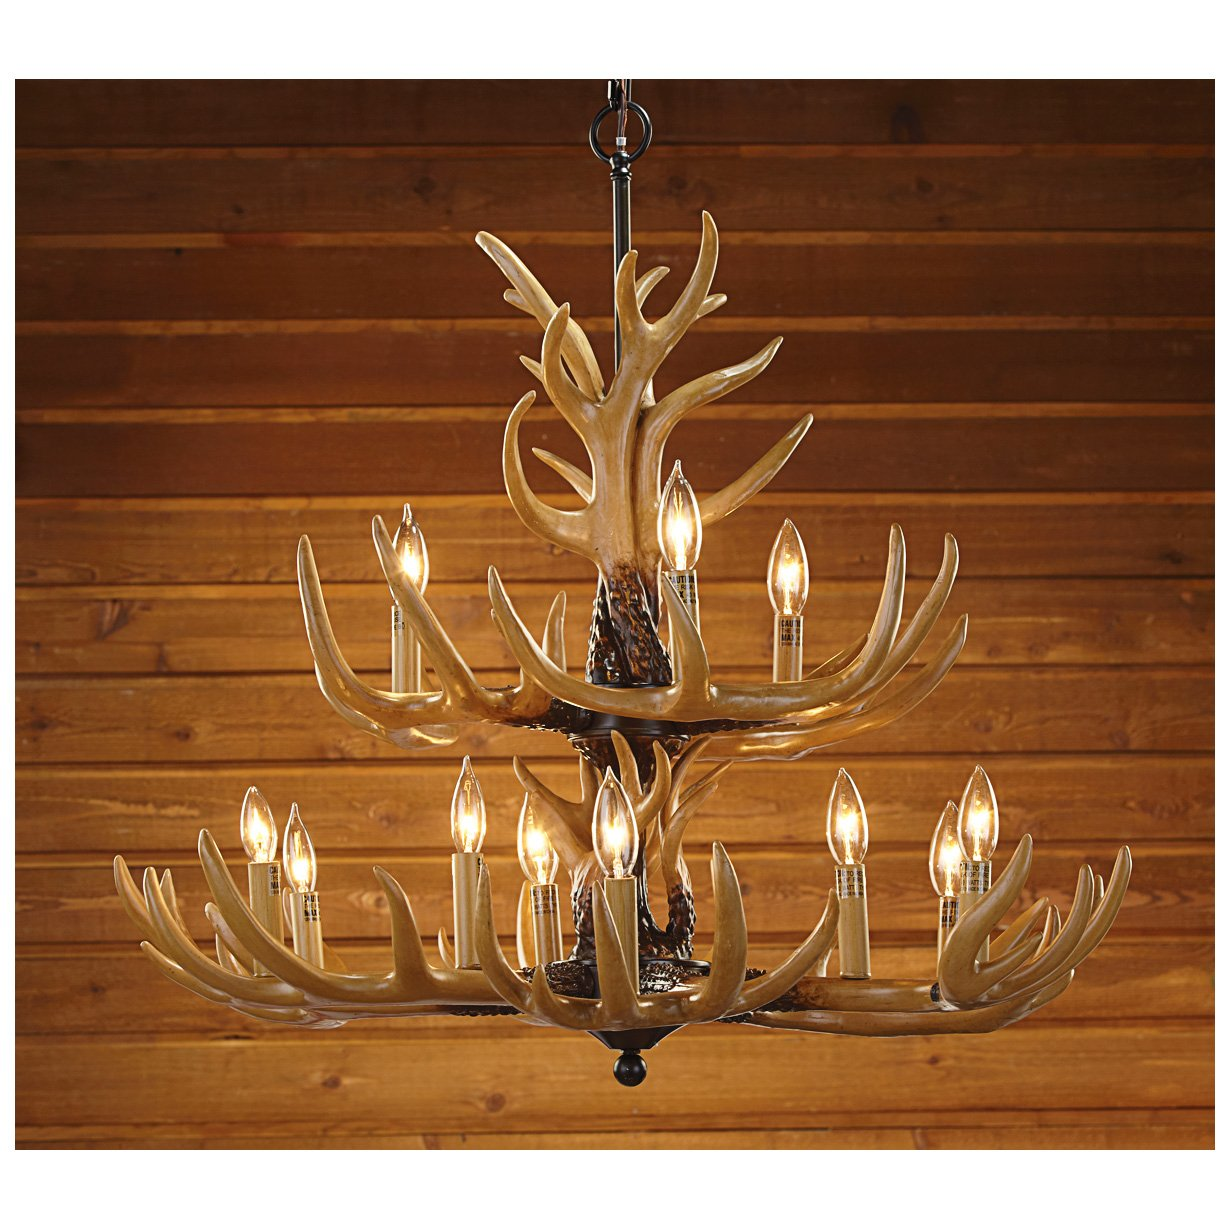 Twelve light deer antler chandelier lighting 36in chain twelve light deer antler chandelier lighting 36in chain amazon arubaitofo Choice Image